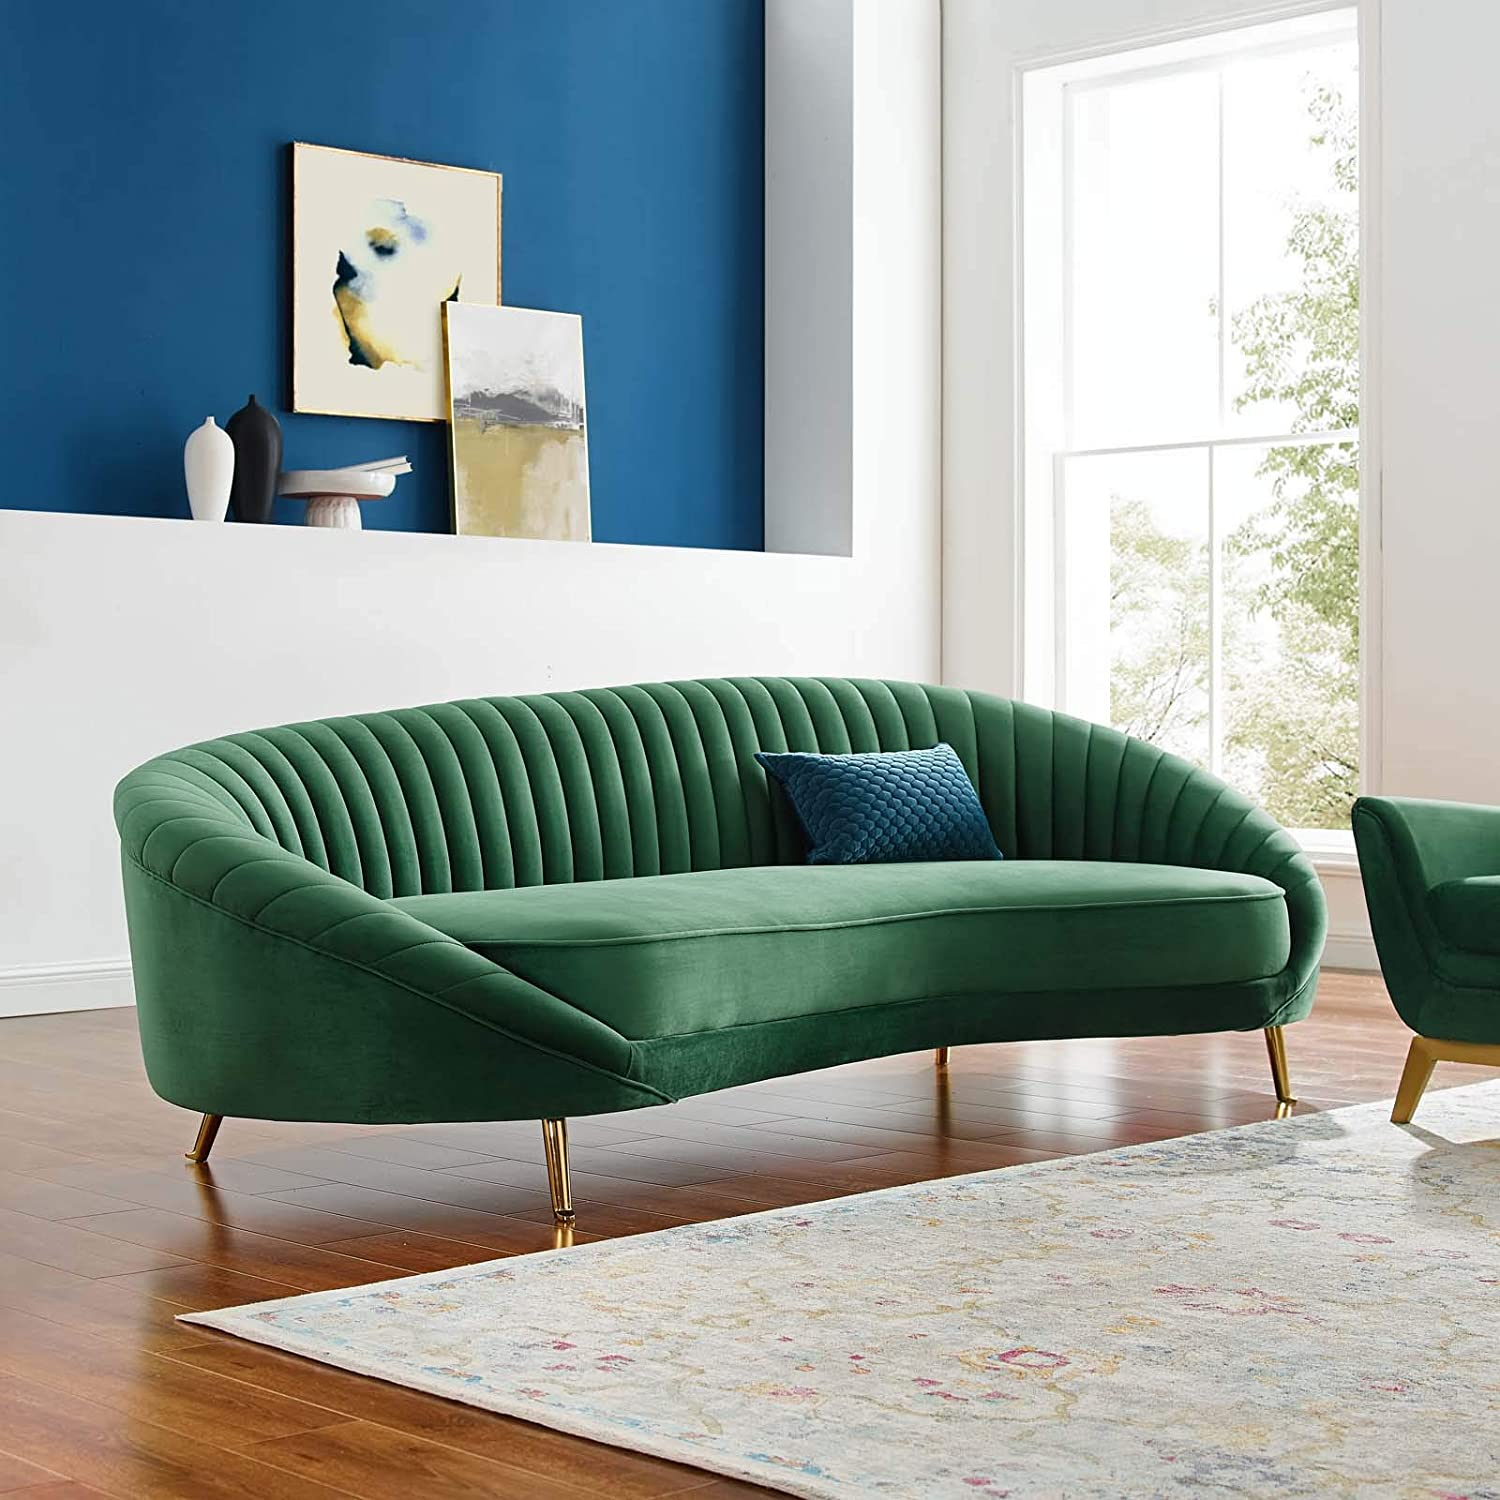 Modway Camber Channel 2021 autumn and winter new Tufted Performance Velvet Emerald Sofa Spring new work in